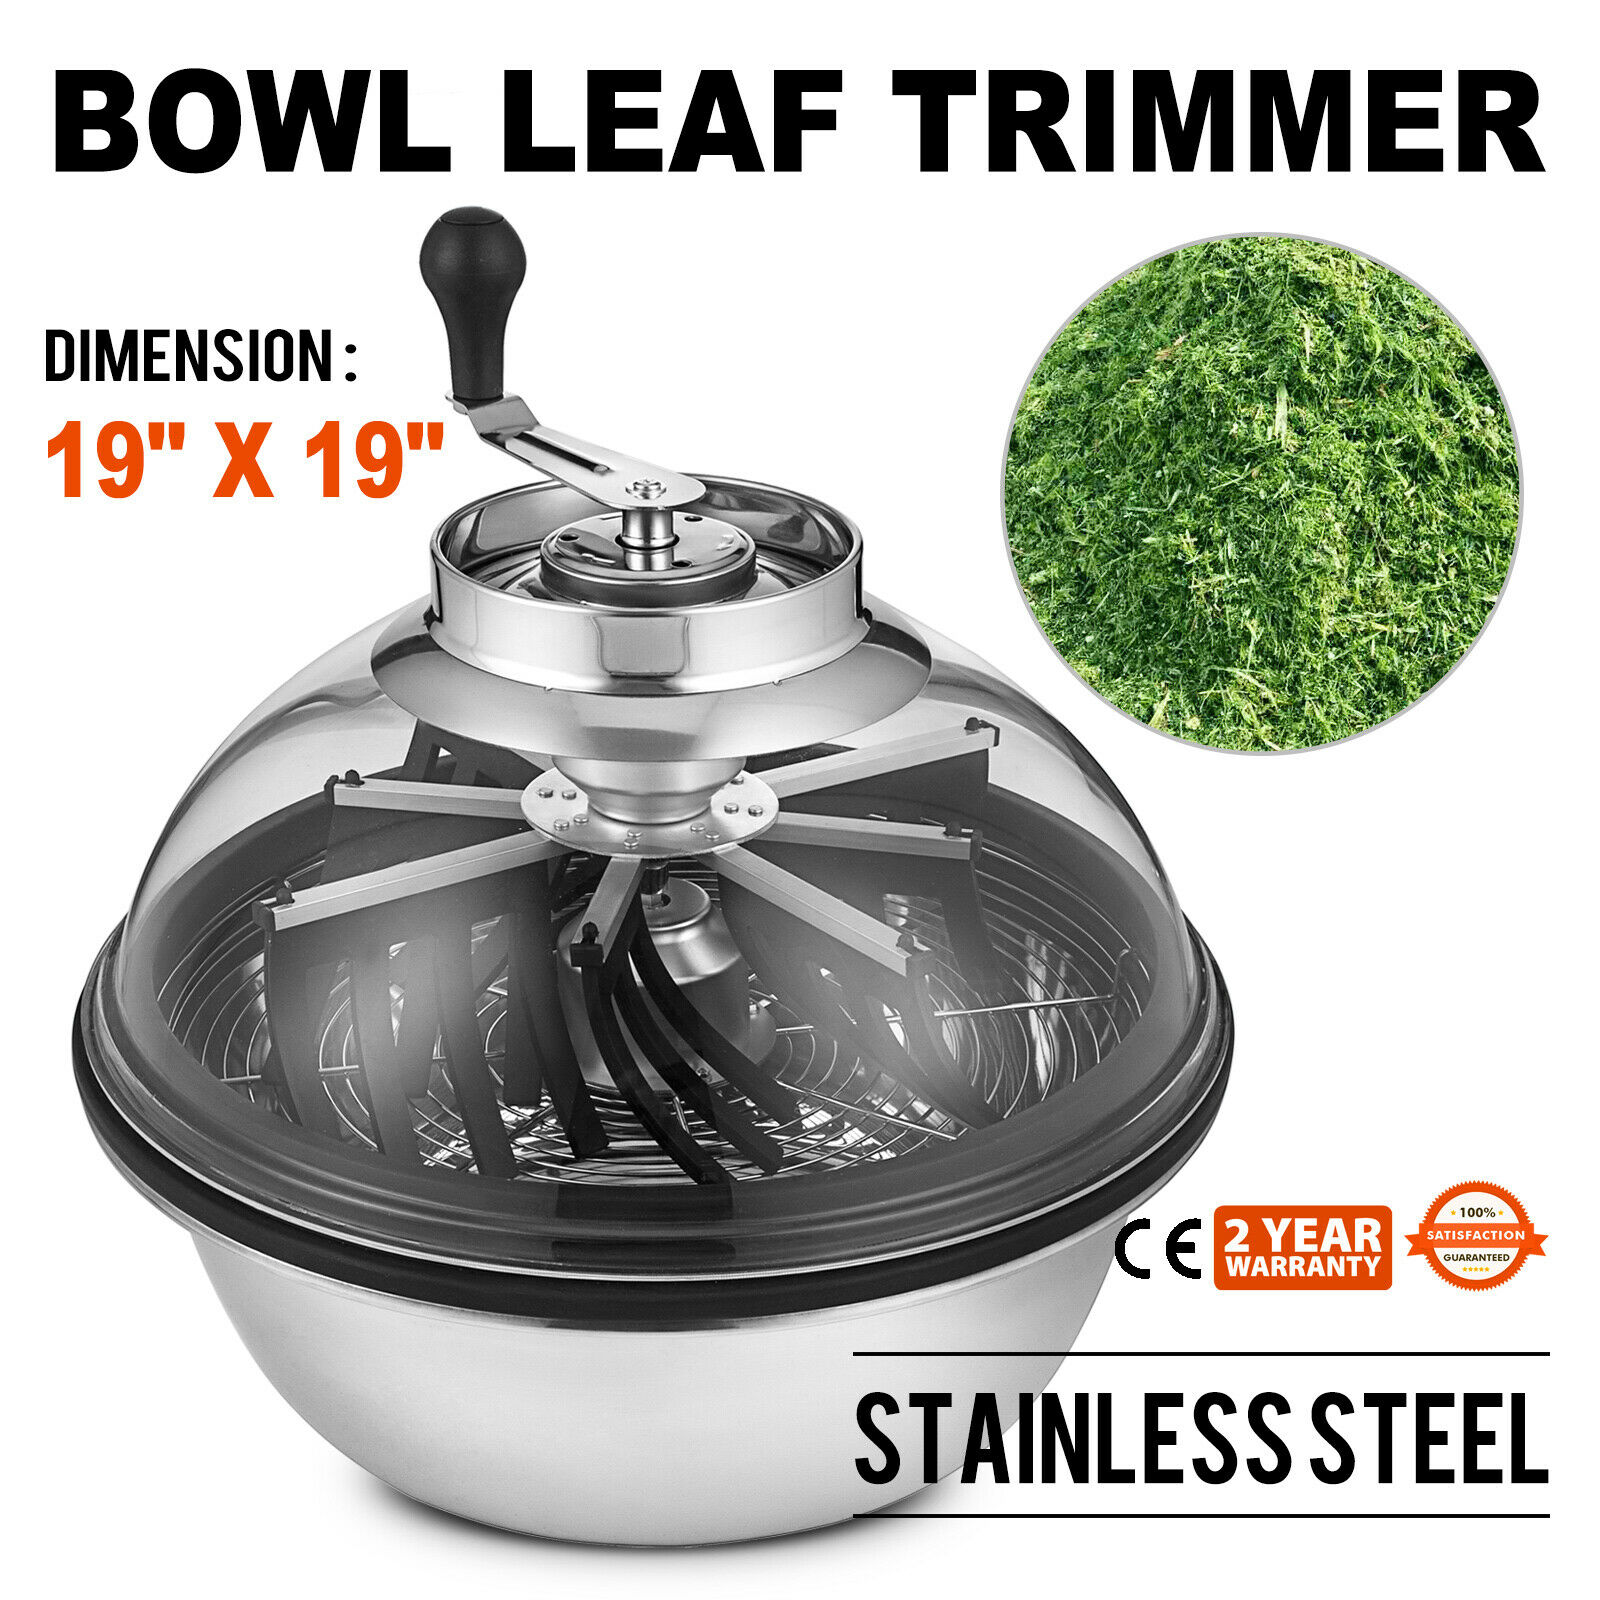 Bowl Trimmer Bowl Hydroponic Trimmer Manual Trimmer Leaf Gem Trim Harvester Cutter Twisted Spin Cut For Plant Bud And Flower